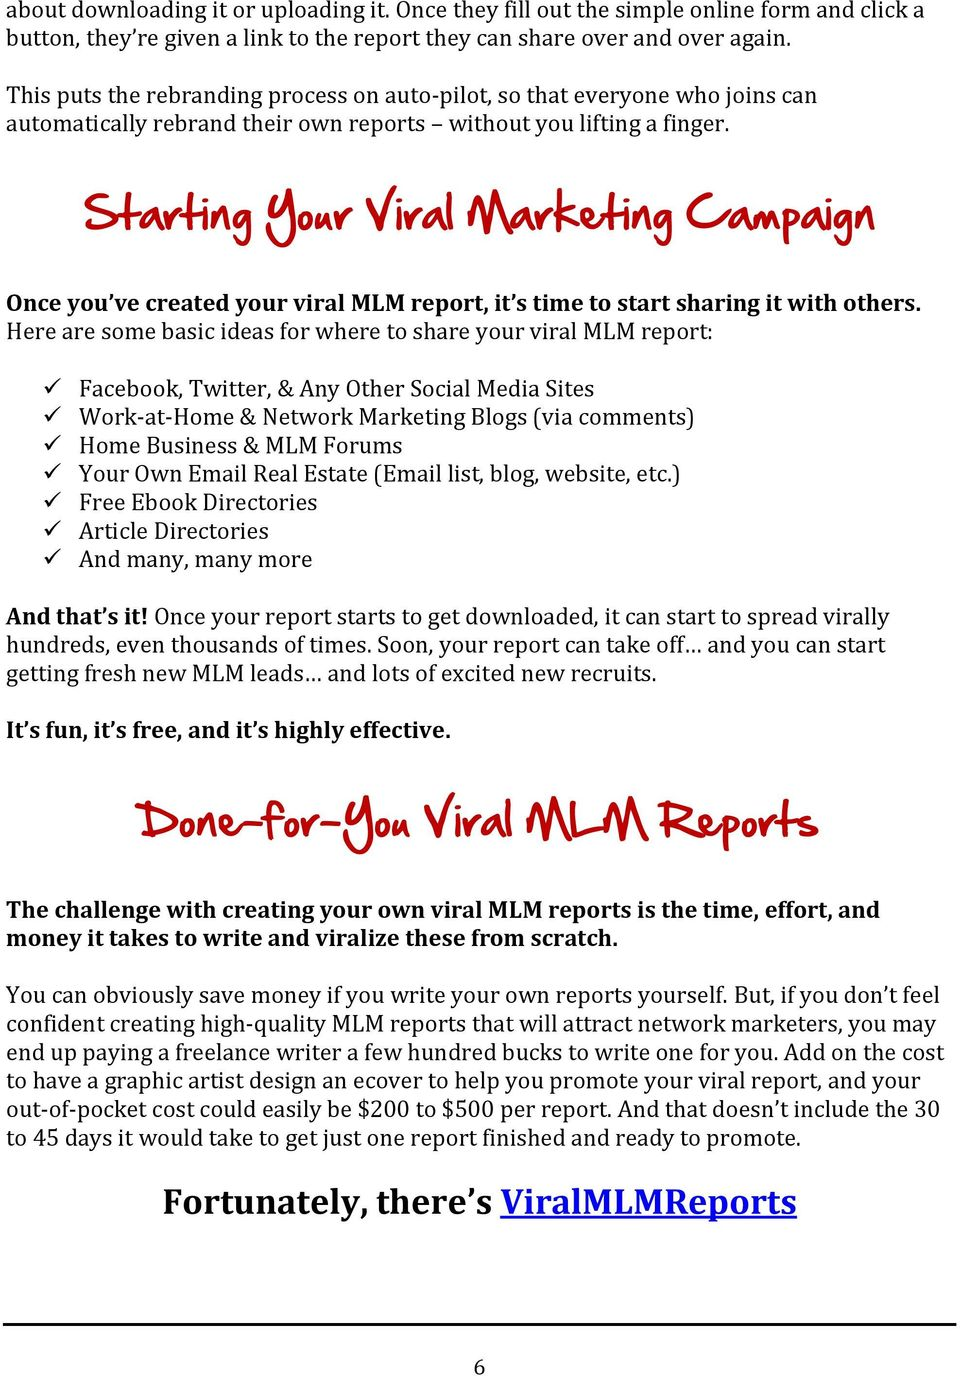 Starting Your Viral Marketing Campaign Once you ve created your viral MLM report, it s time to start sharing it with others.